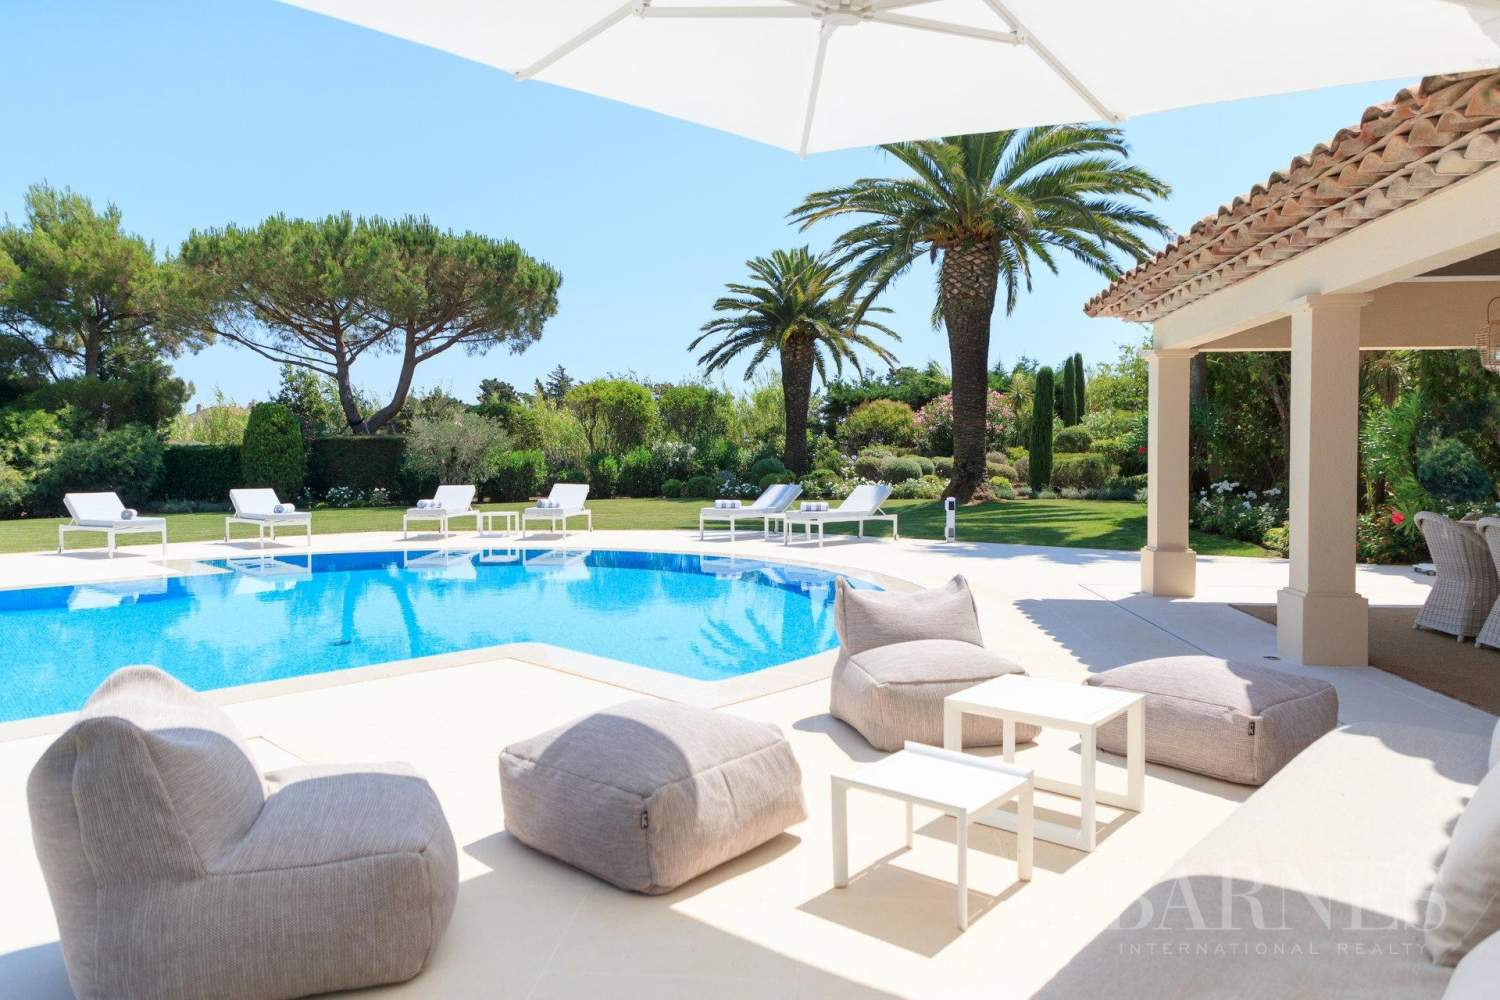 SAINT-TROPEZ - Salins aera - Magnificent villa near the beaches and the village picture 5